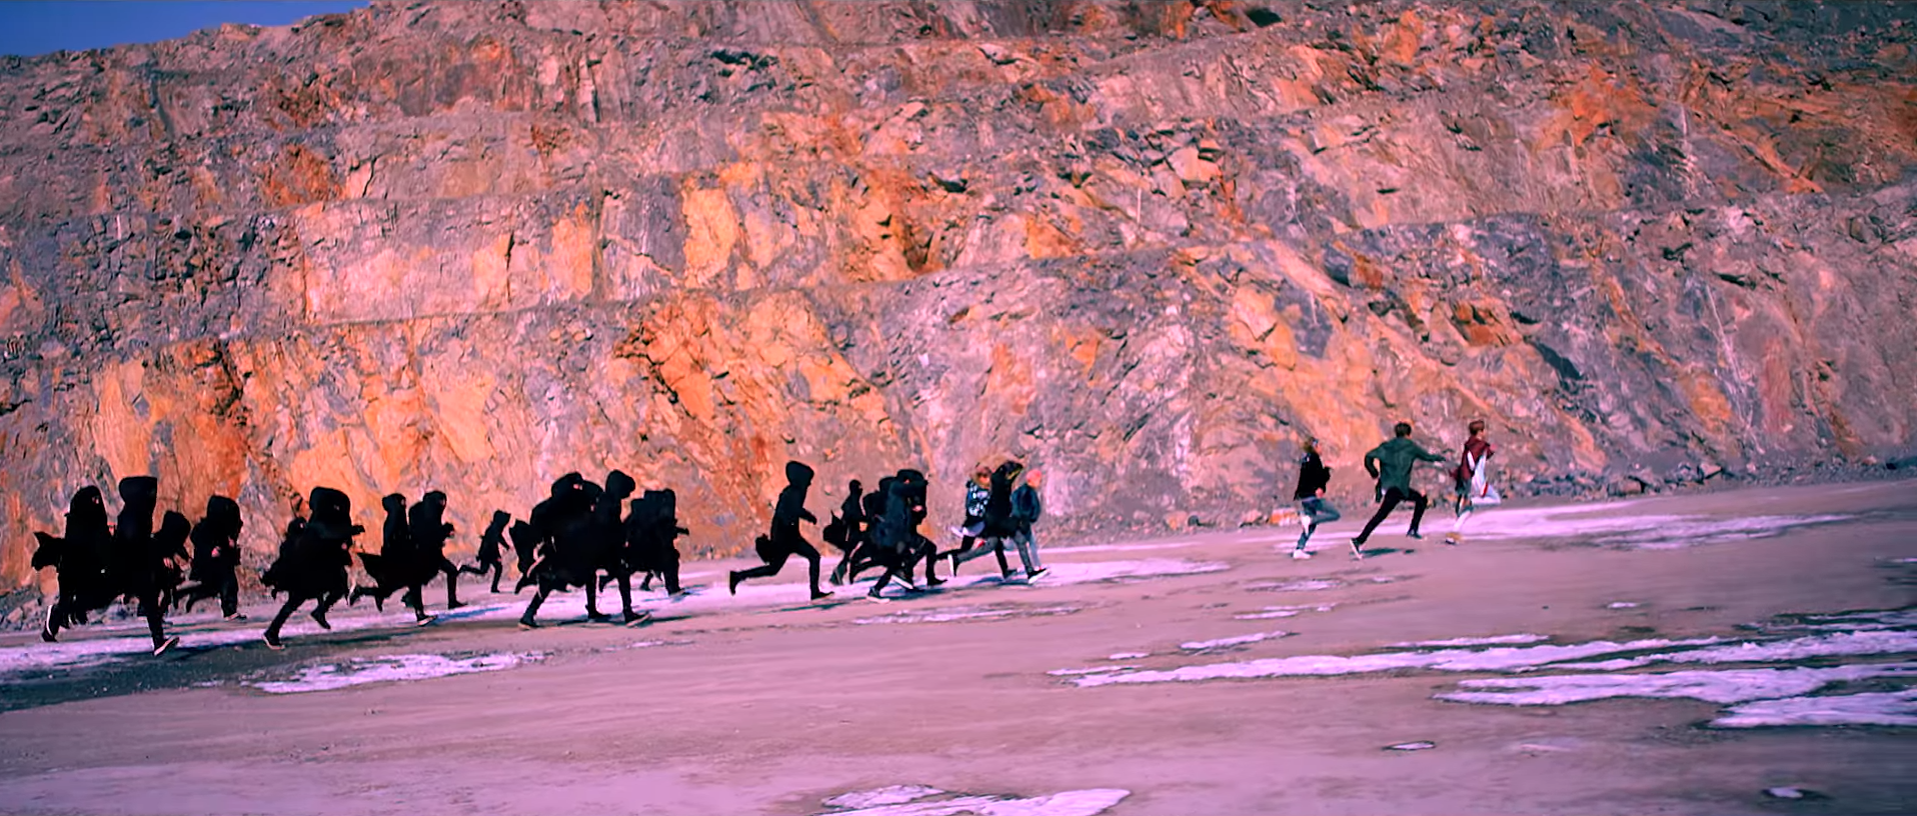 Bts Challenges Their Haters In Not Today Seoulbeats